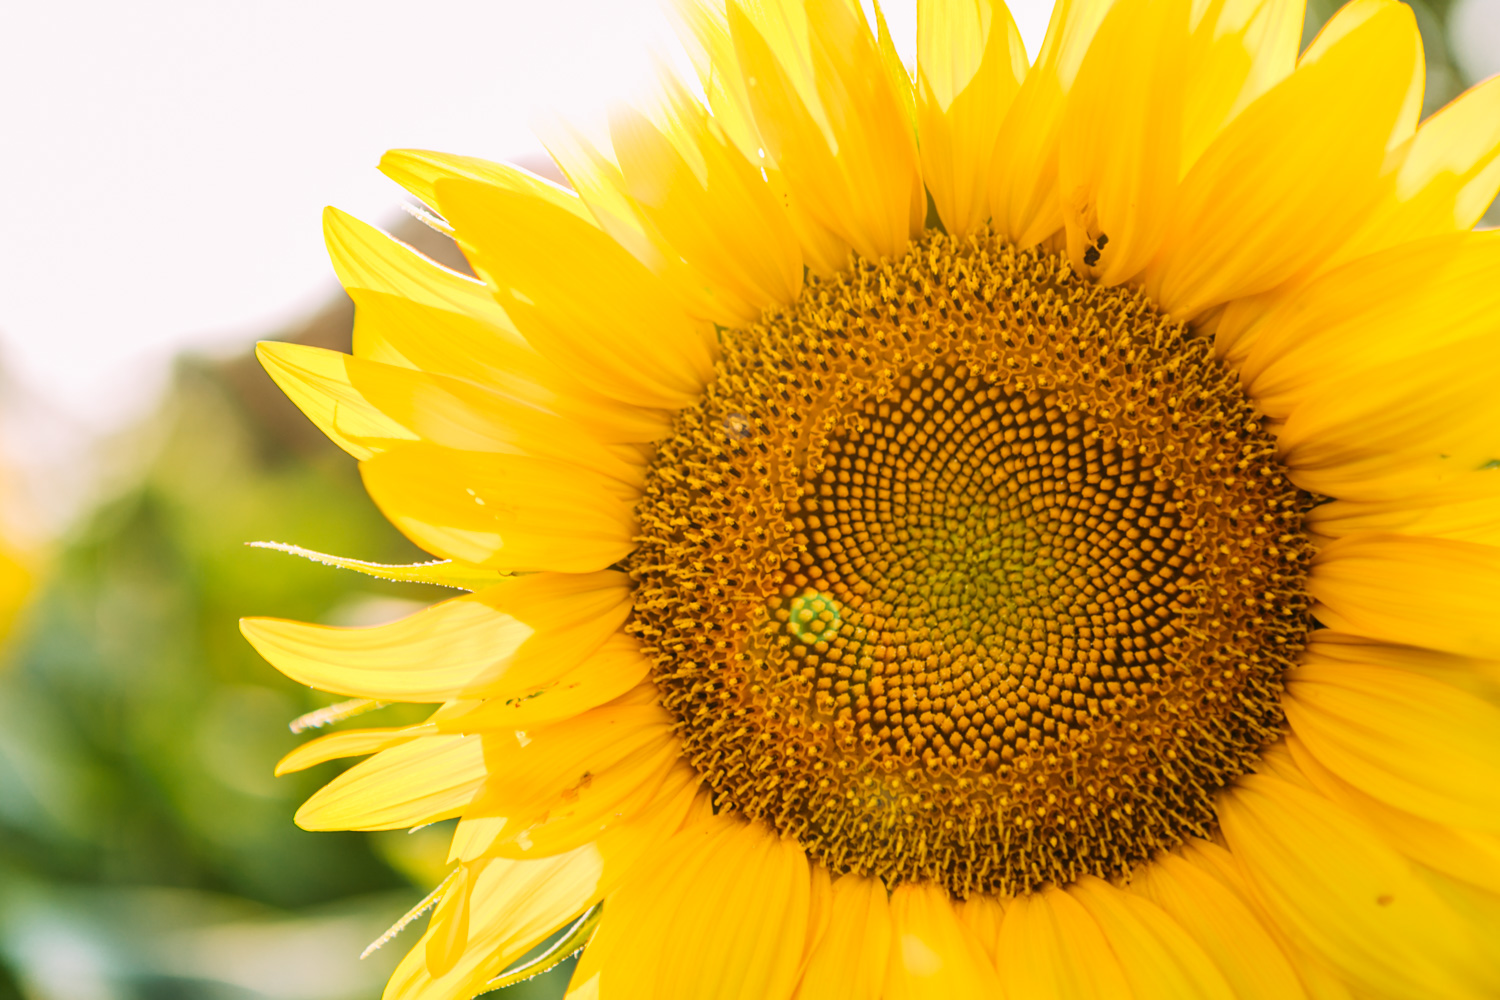 Sunflower with lens flare at Britt's Garden Acres and Farm, photographed during a Sunflower Mini Session in Manhattan Kansas.